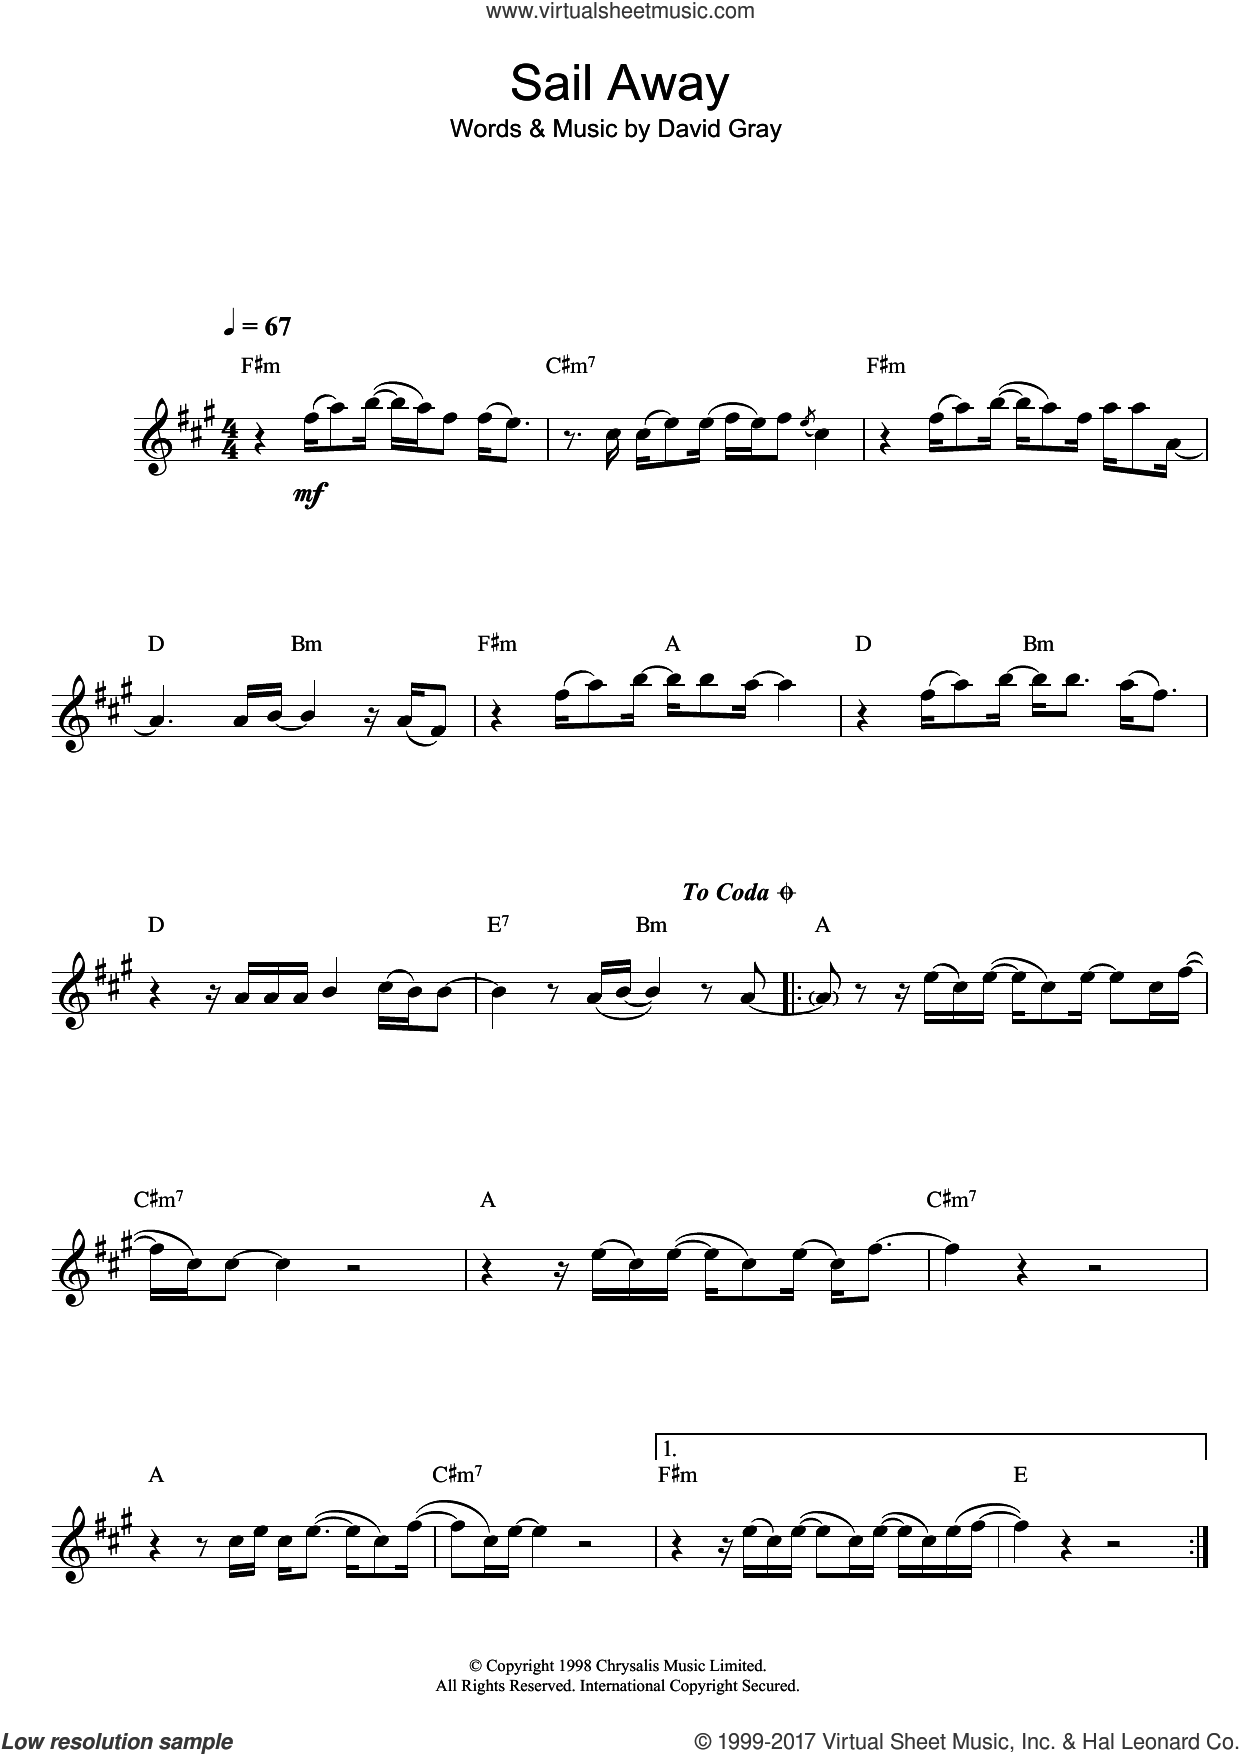 Sail Away sheet music for alto saxophone solo by David Gray, intermediate